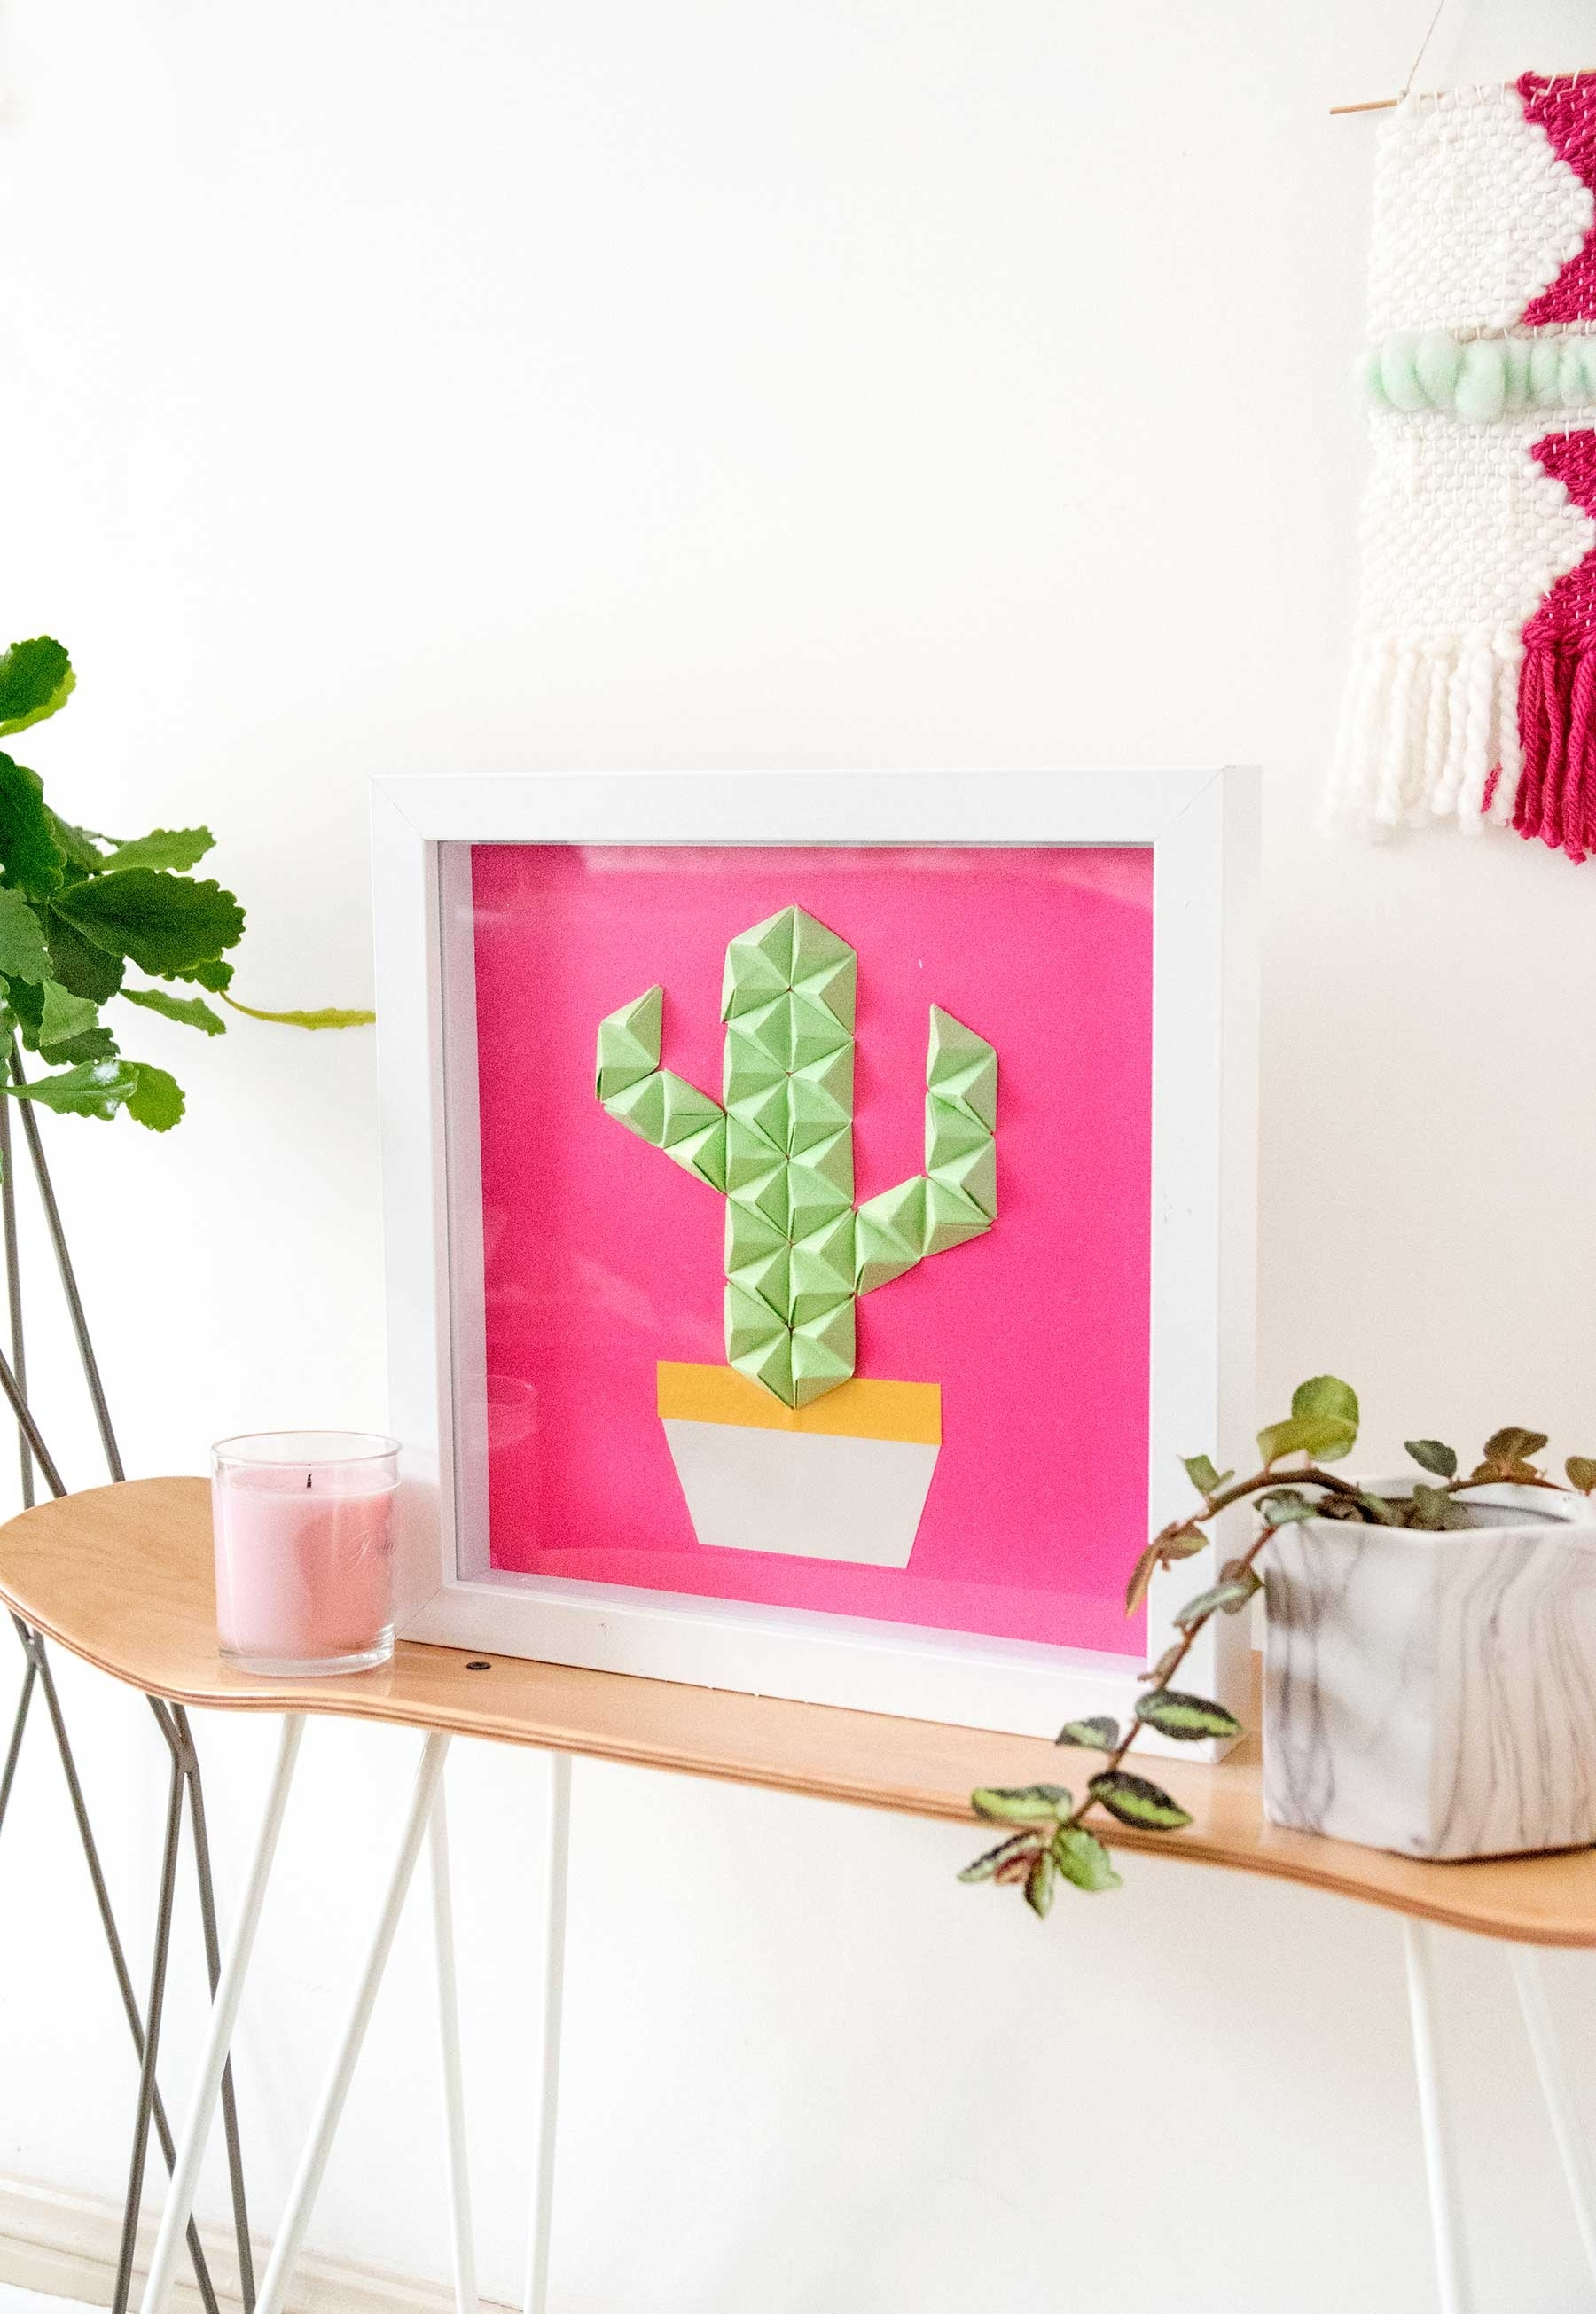 Diy Origami Wall Art For Curbly – Make And Tell intended for Cactus Wall Art (Image 11 of 20)